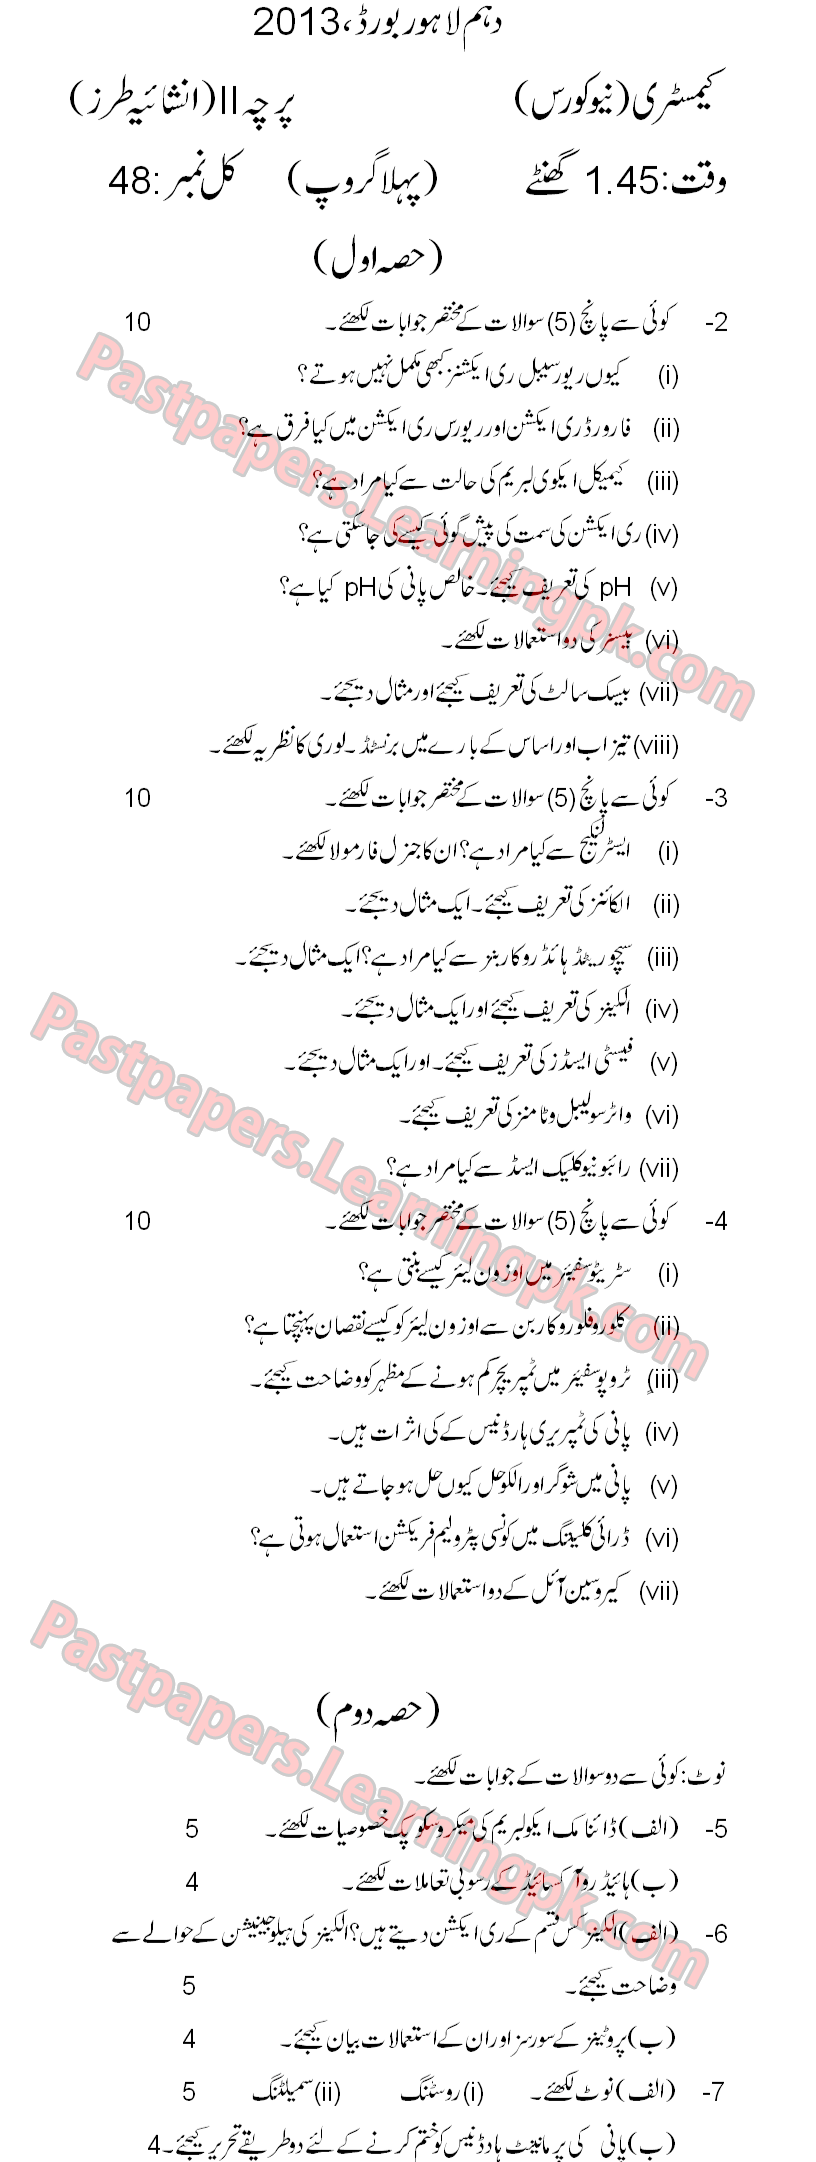 lahore board chemistry past paper 2013 10th class old guess paper Lahore Board Chemistry Past Paper 2013 10th Class Old Guess Paper